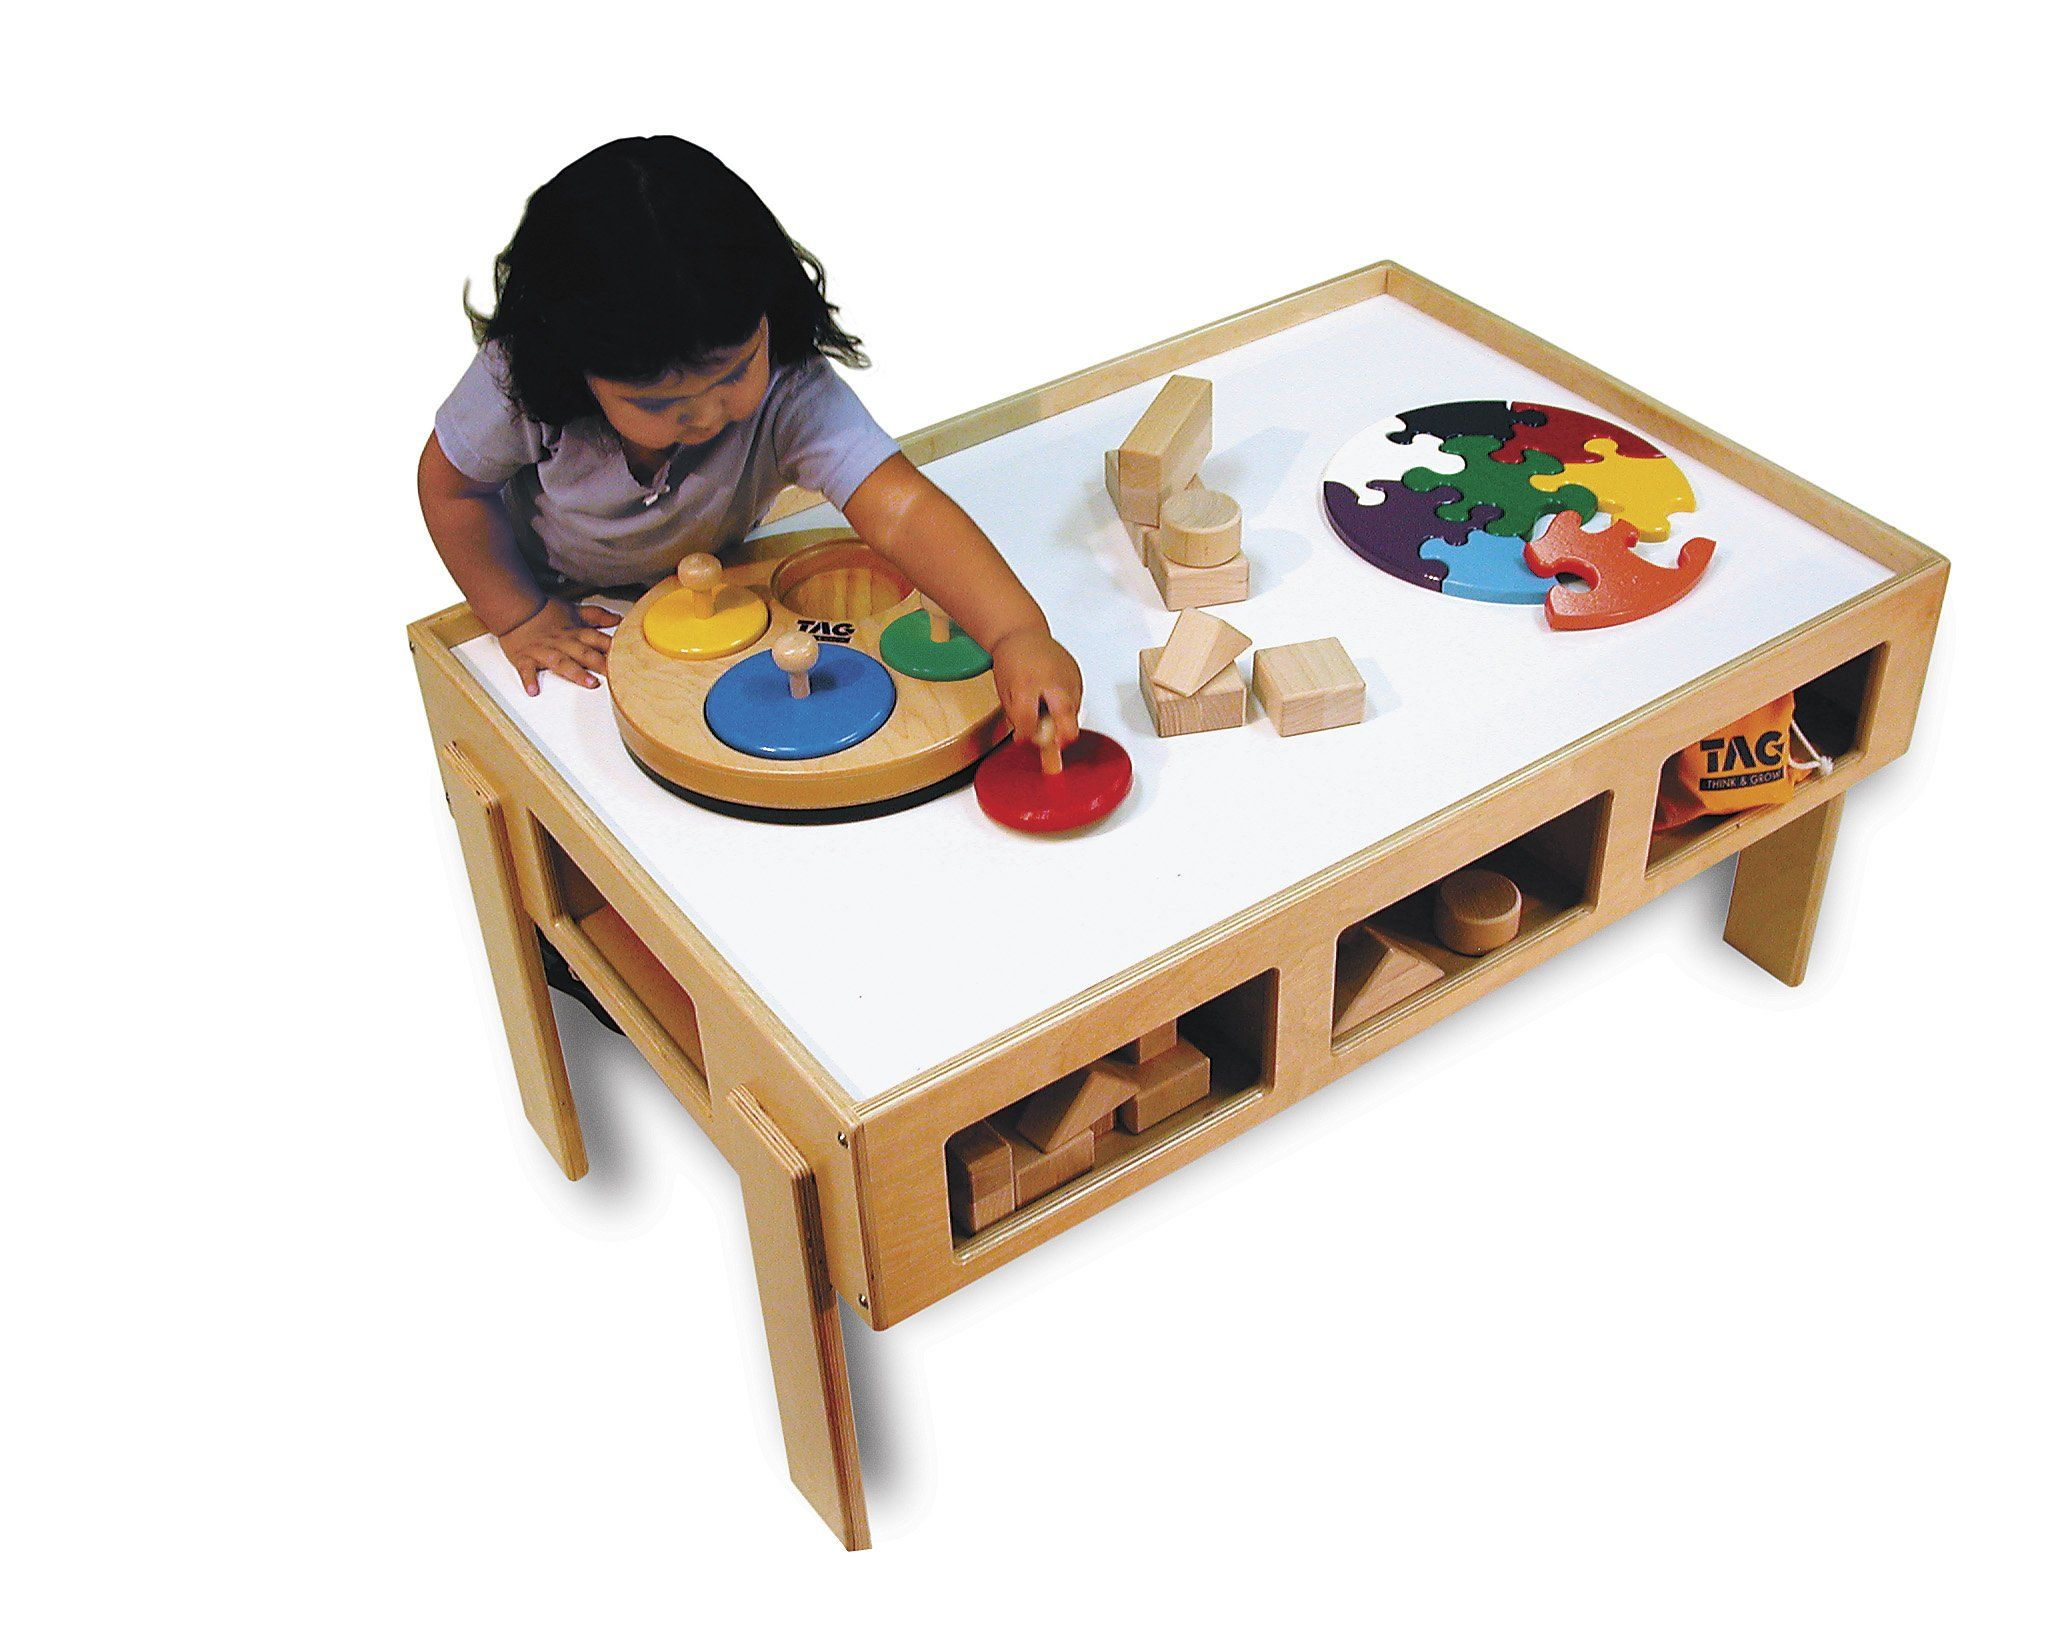 The Toddler Activity Table Is Sturdy, Spacious And American Made! This Play  Table Will Prove To Be A Favorite Play Space For Your Child. Made By TAG  Toys.